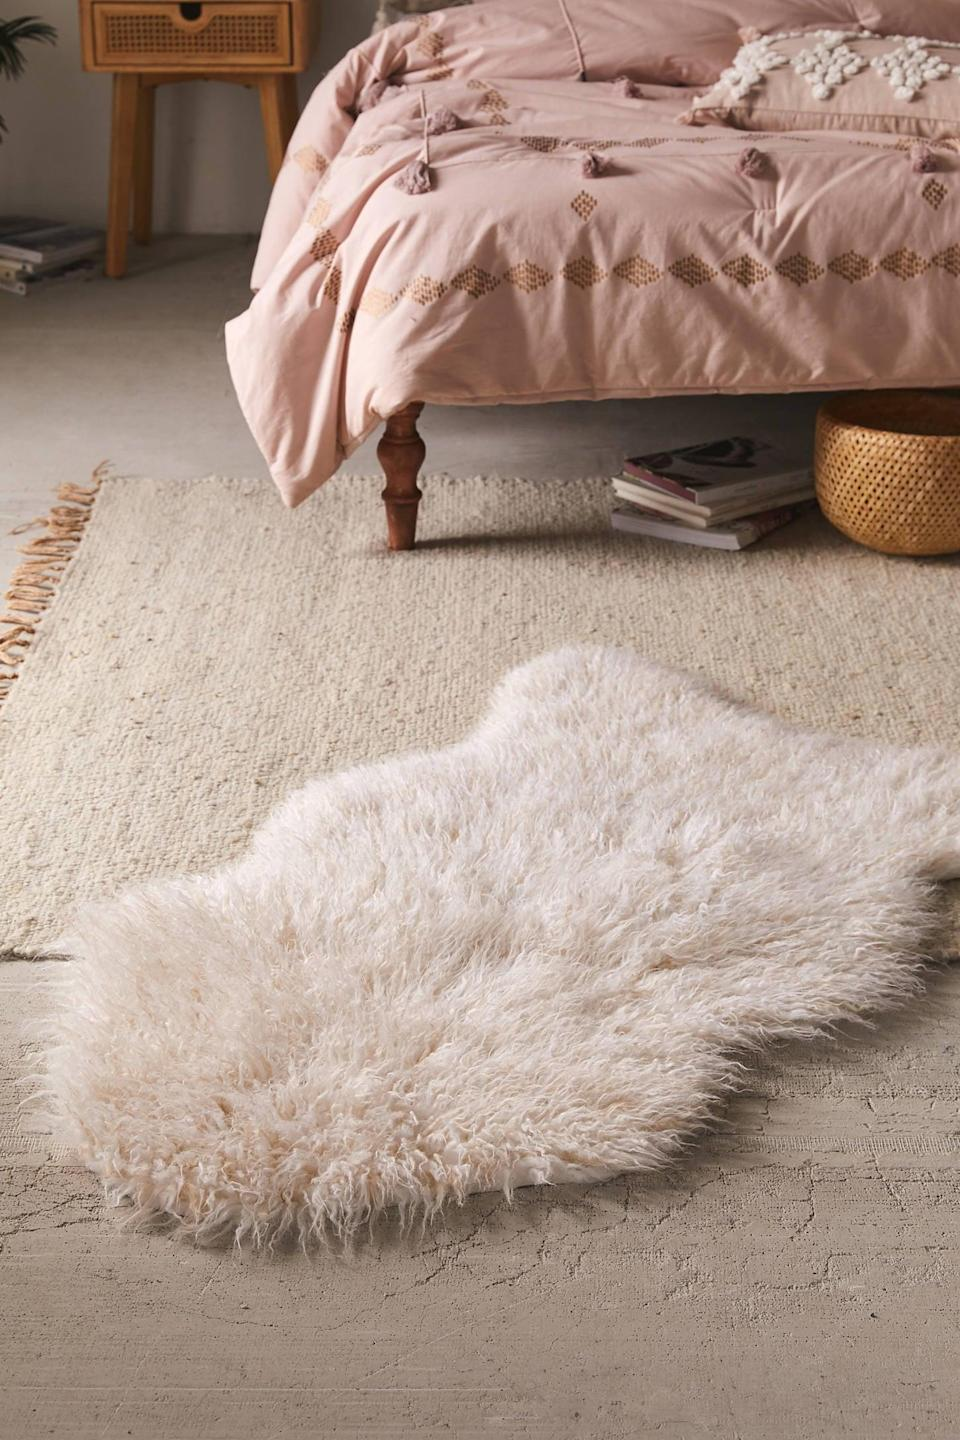 """<p>This <a href=""""https://www.popsugar.com/buy/Mazzy-Faux-Fur-Shaped-Rug-546166?p_name=Mazzy%20Faux%20Fur%20Shaped%20Rug&retailer=urbanoutfitters.com&pid=546166&price=54&evar1=casa%3Aus&evar9=45186448&evar98=https%3A%2F%2Fwww.popsugar.com%2Fhome%2Fphoto-gallery%2F45186448%2Fimage%2F47350008%2FMazzy-Faux-Fur-Shaped-Rug&list1=shopping%2Curban%20outfitters%2Chome%20decor%2Csmall%20space%20living%2Cdecor%20shopping&prop13=mobile&pdata=1"""" class=""""link rapid-noclick-resp"""" rel=""""nofollow noopener"""" target=""""_blank"""" data-ylk=""""slk:Mazzy Faux Fur Shaped Rug"""">Mazzy Faux Fur Shaped Rug</a> ($54-$118, originally $59-$129) comes in three different sizes.</p>"""